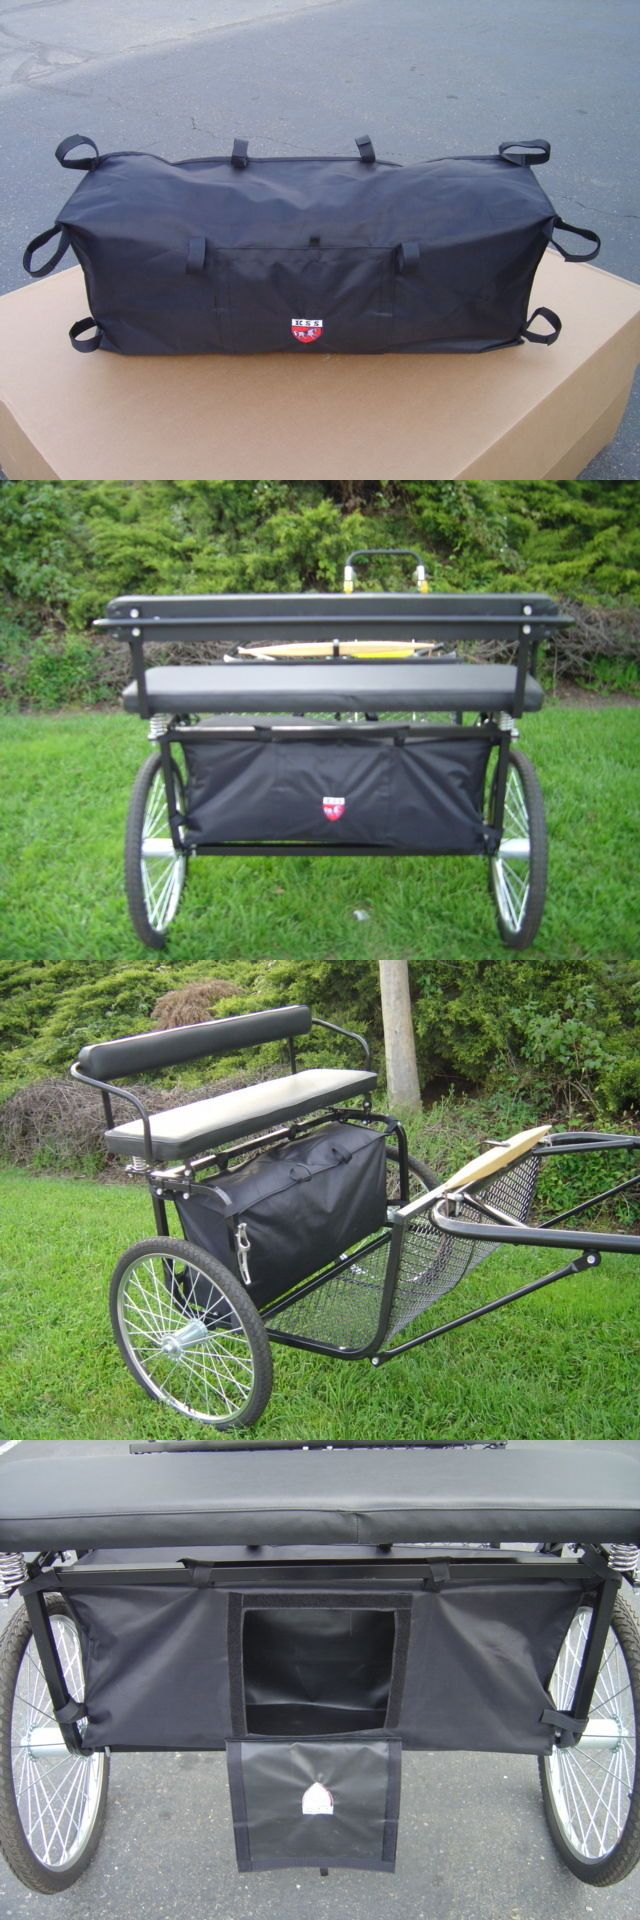 Other Driving Equipment 13376: Large Storage Bag For Ez Entry Pony/Cob/Full Horse Cart -> BUY IT NOW ONLY: $45.0 on eBay!